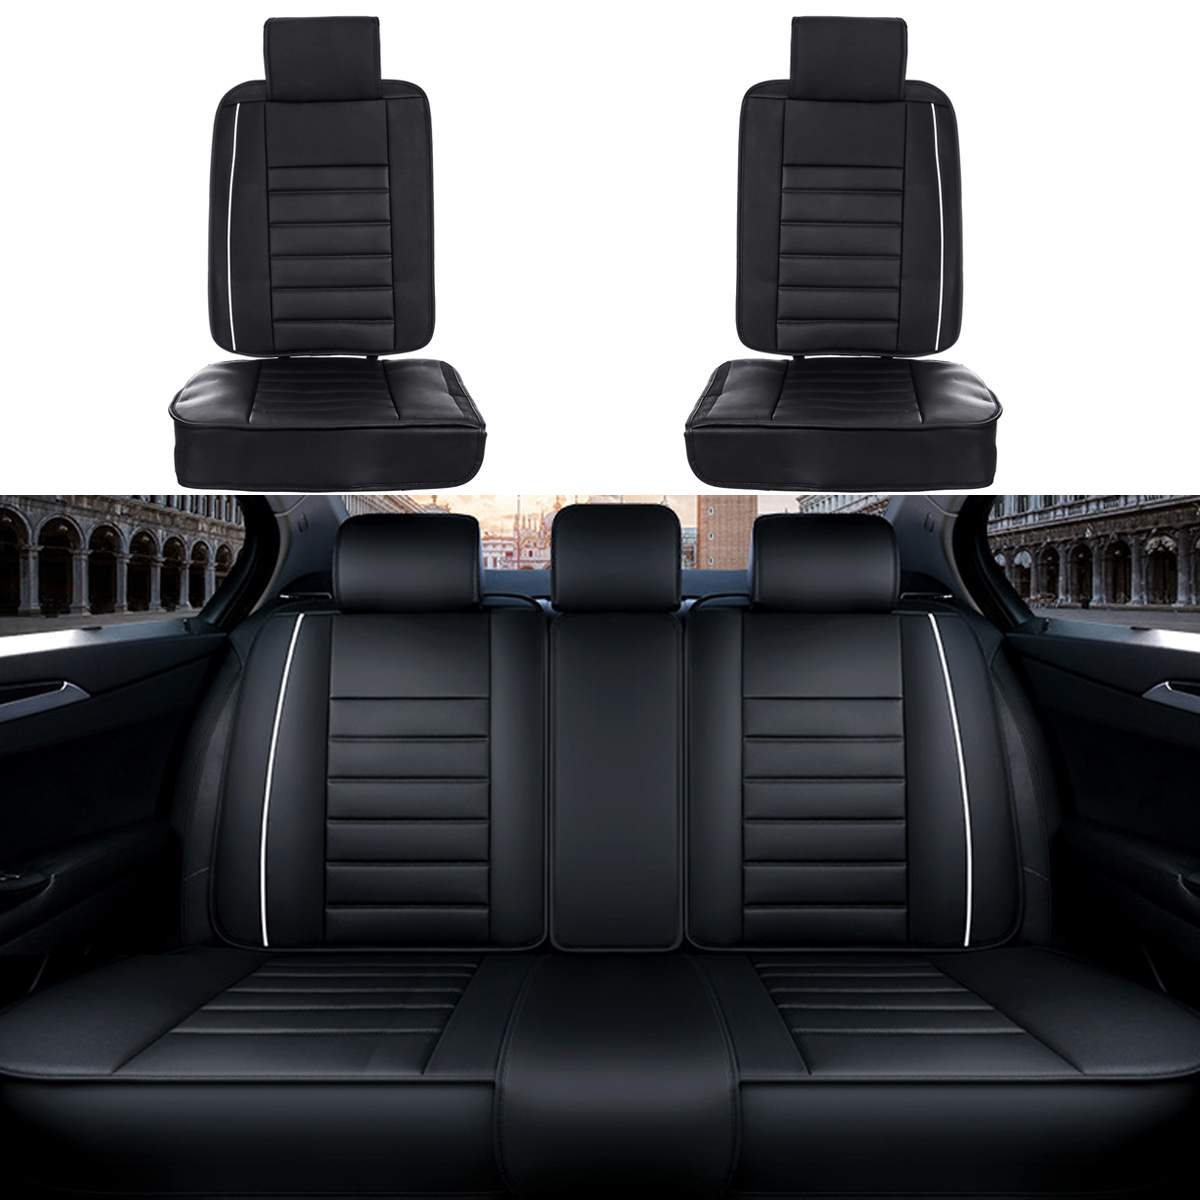 PU Leather Full Set 5-Seats Universal Car Seat Cover Cushion SUV Front & Rear Interior Car Protector Accessories BlackPU Leather Full Set 5-Seats Universal Car Seat Cover Cushion SUV Front & Rear Interior Car Protector Accessories Black